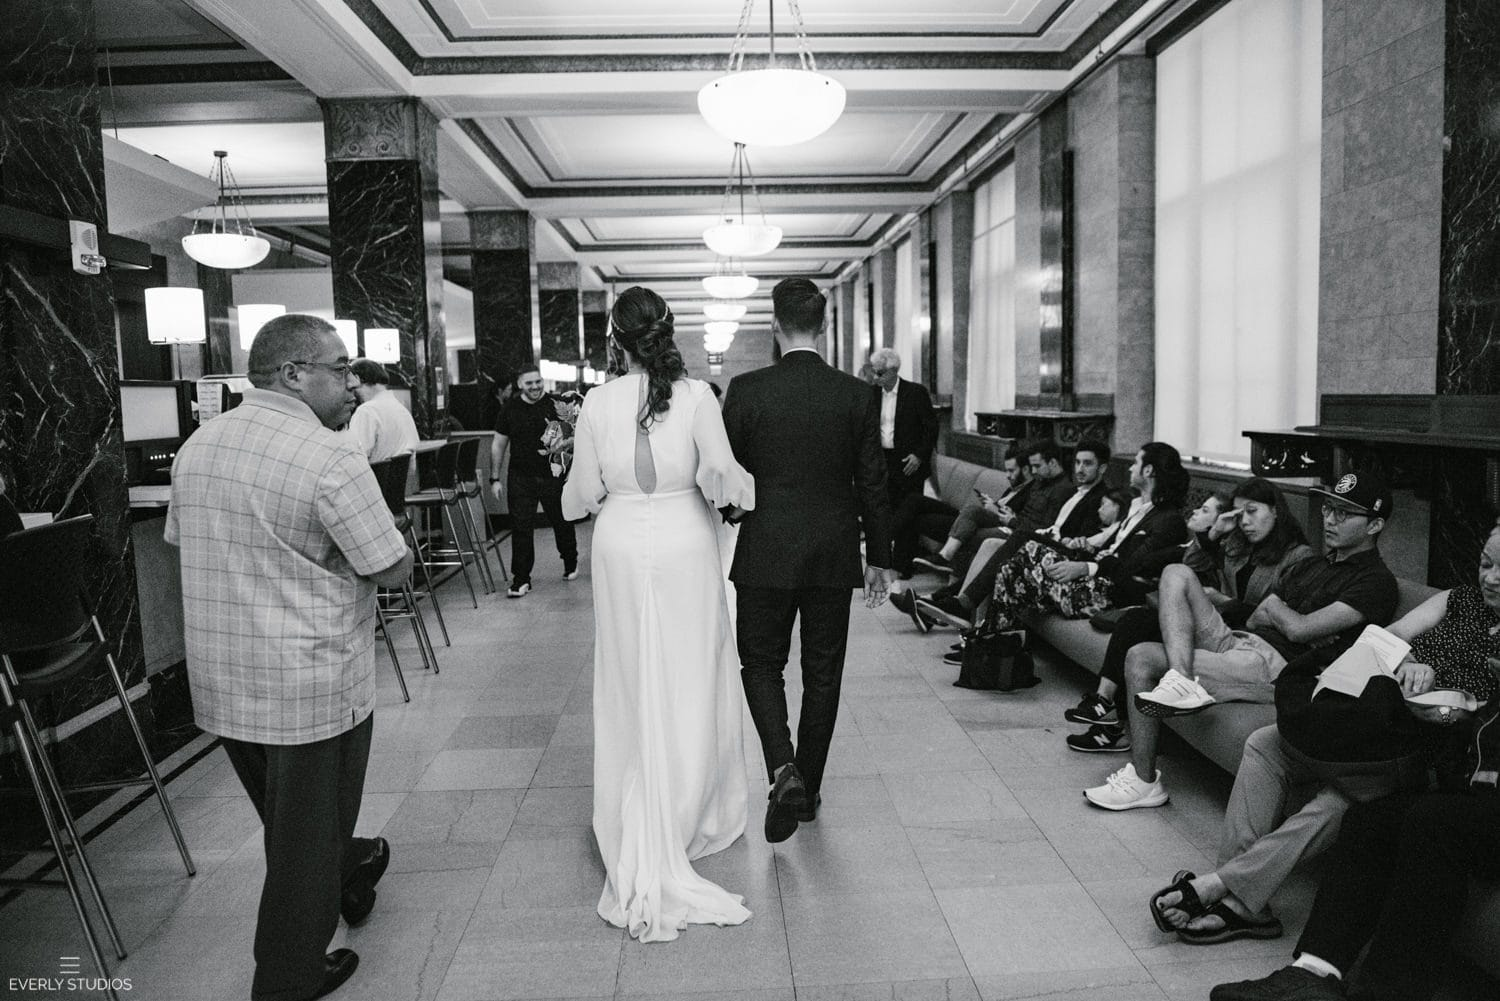 NYC City Hall elopement. Photos by NYC elopement photographer Everly Studios, www.everlystudios.com